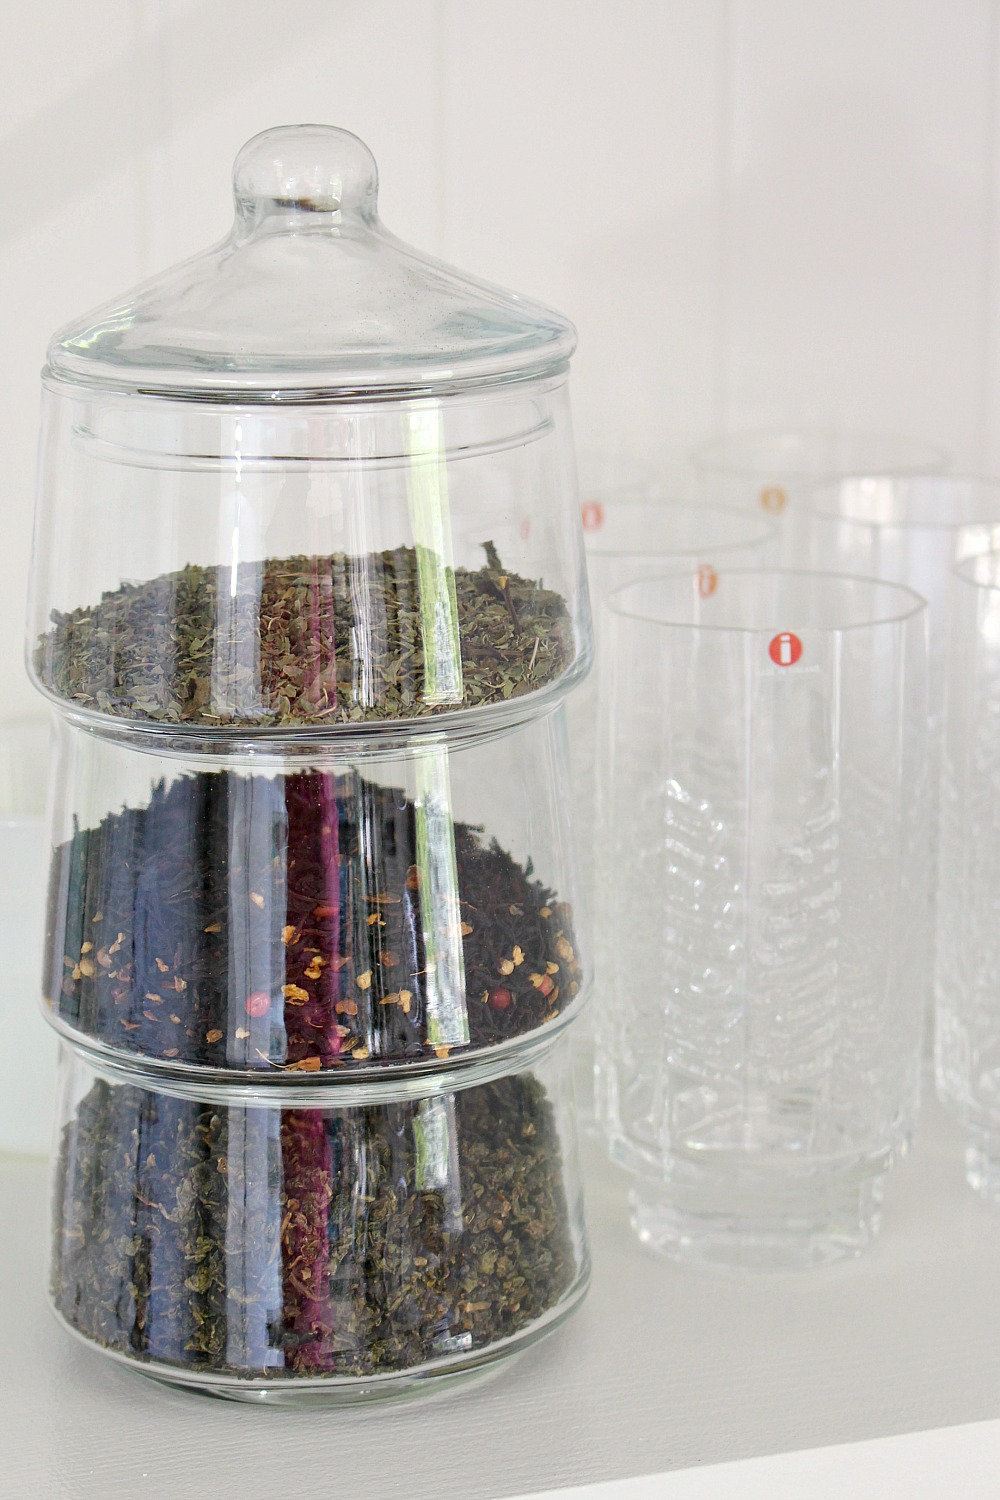 Clever Idea for Storing Loose Leaf Tea